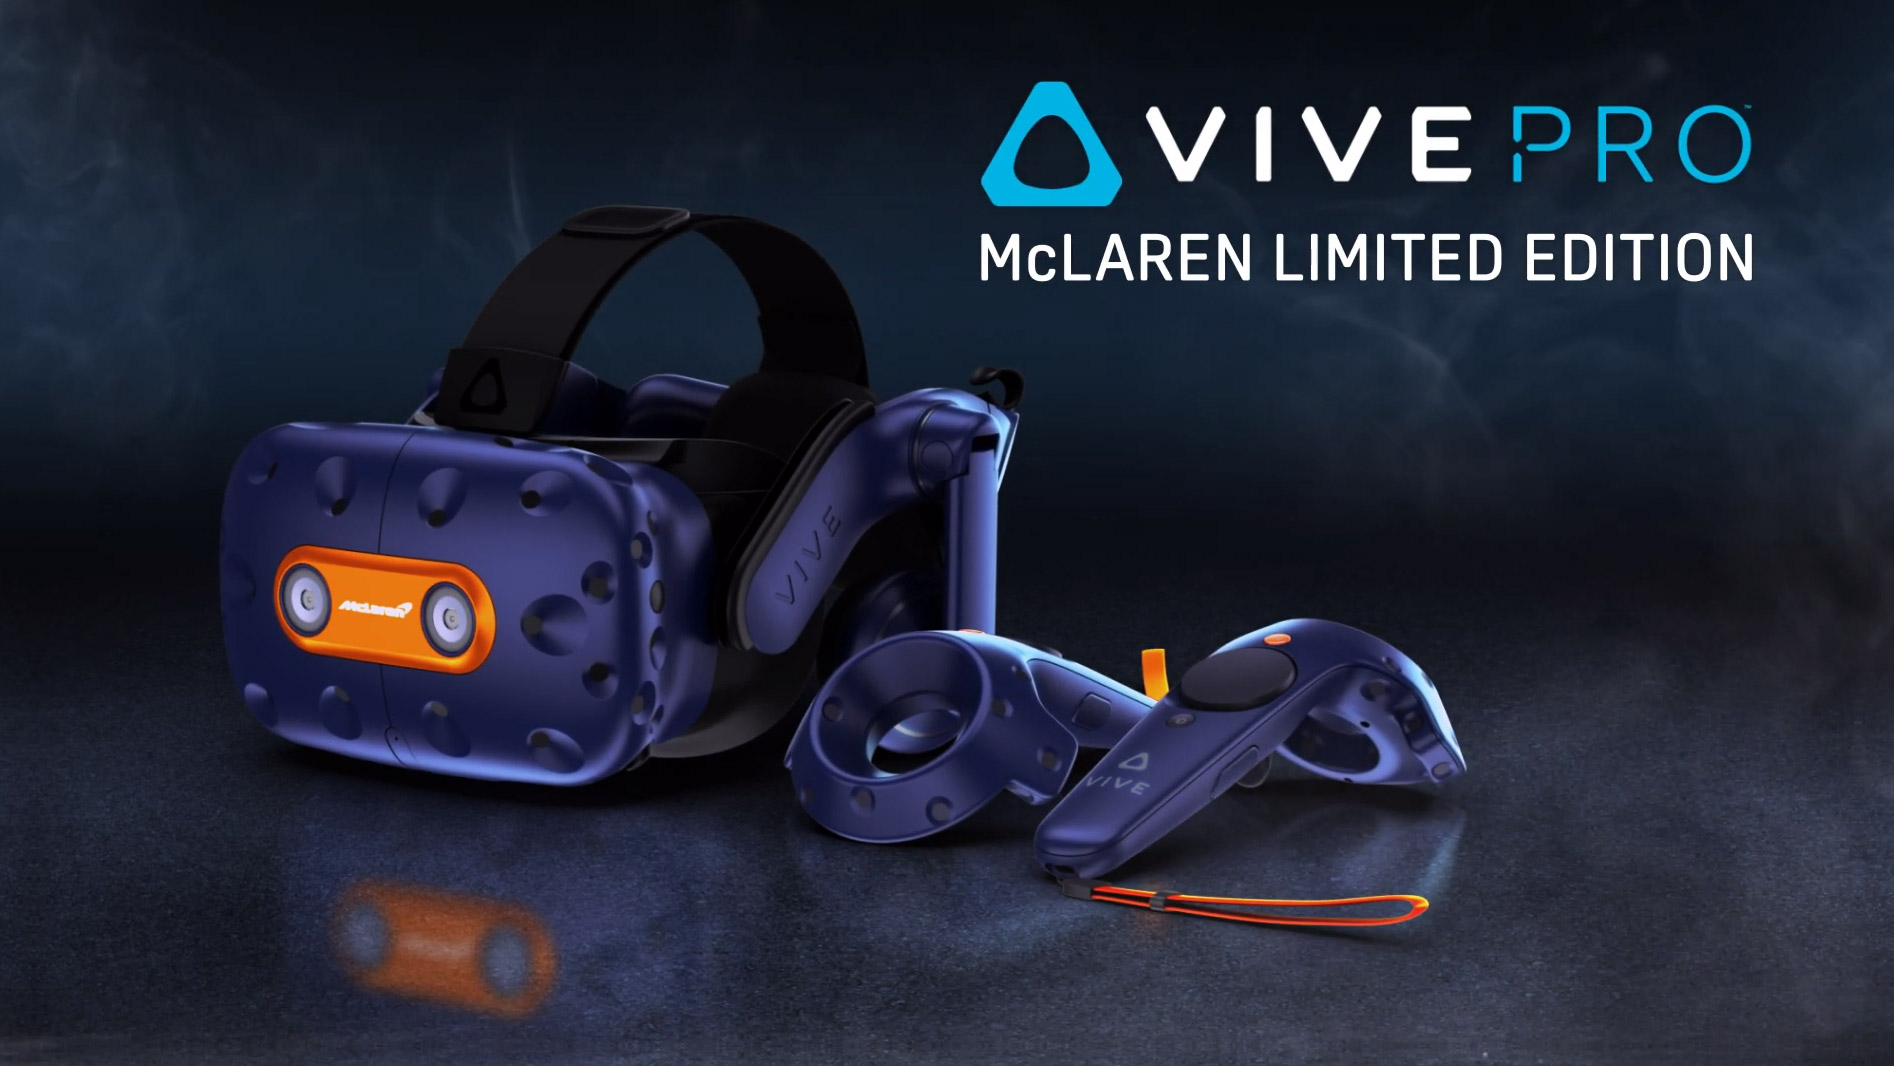 $1,550 Vive Pro McLaren Edition Further Confuses the Headset's Positioning